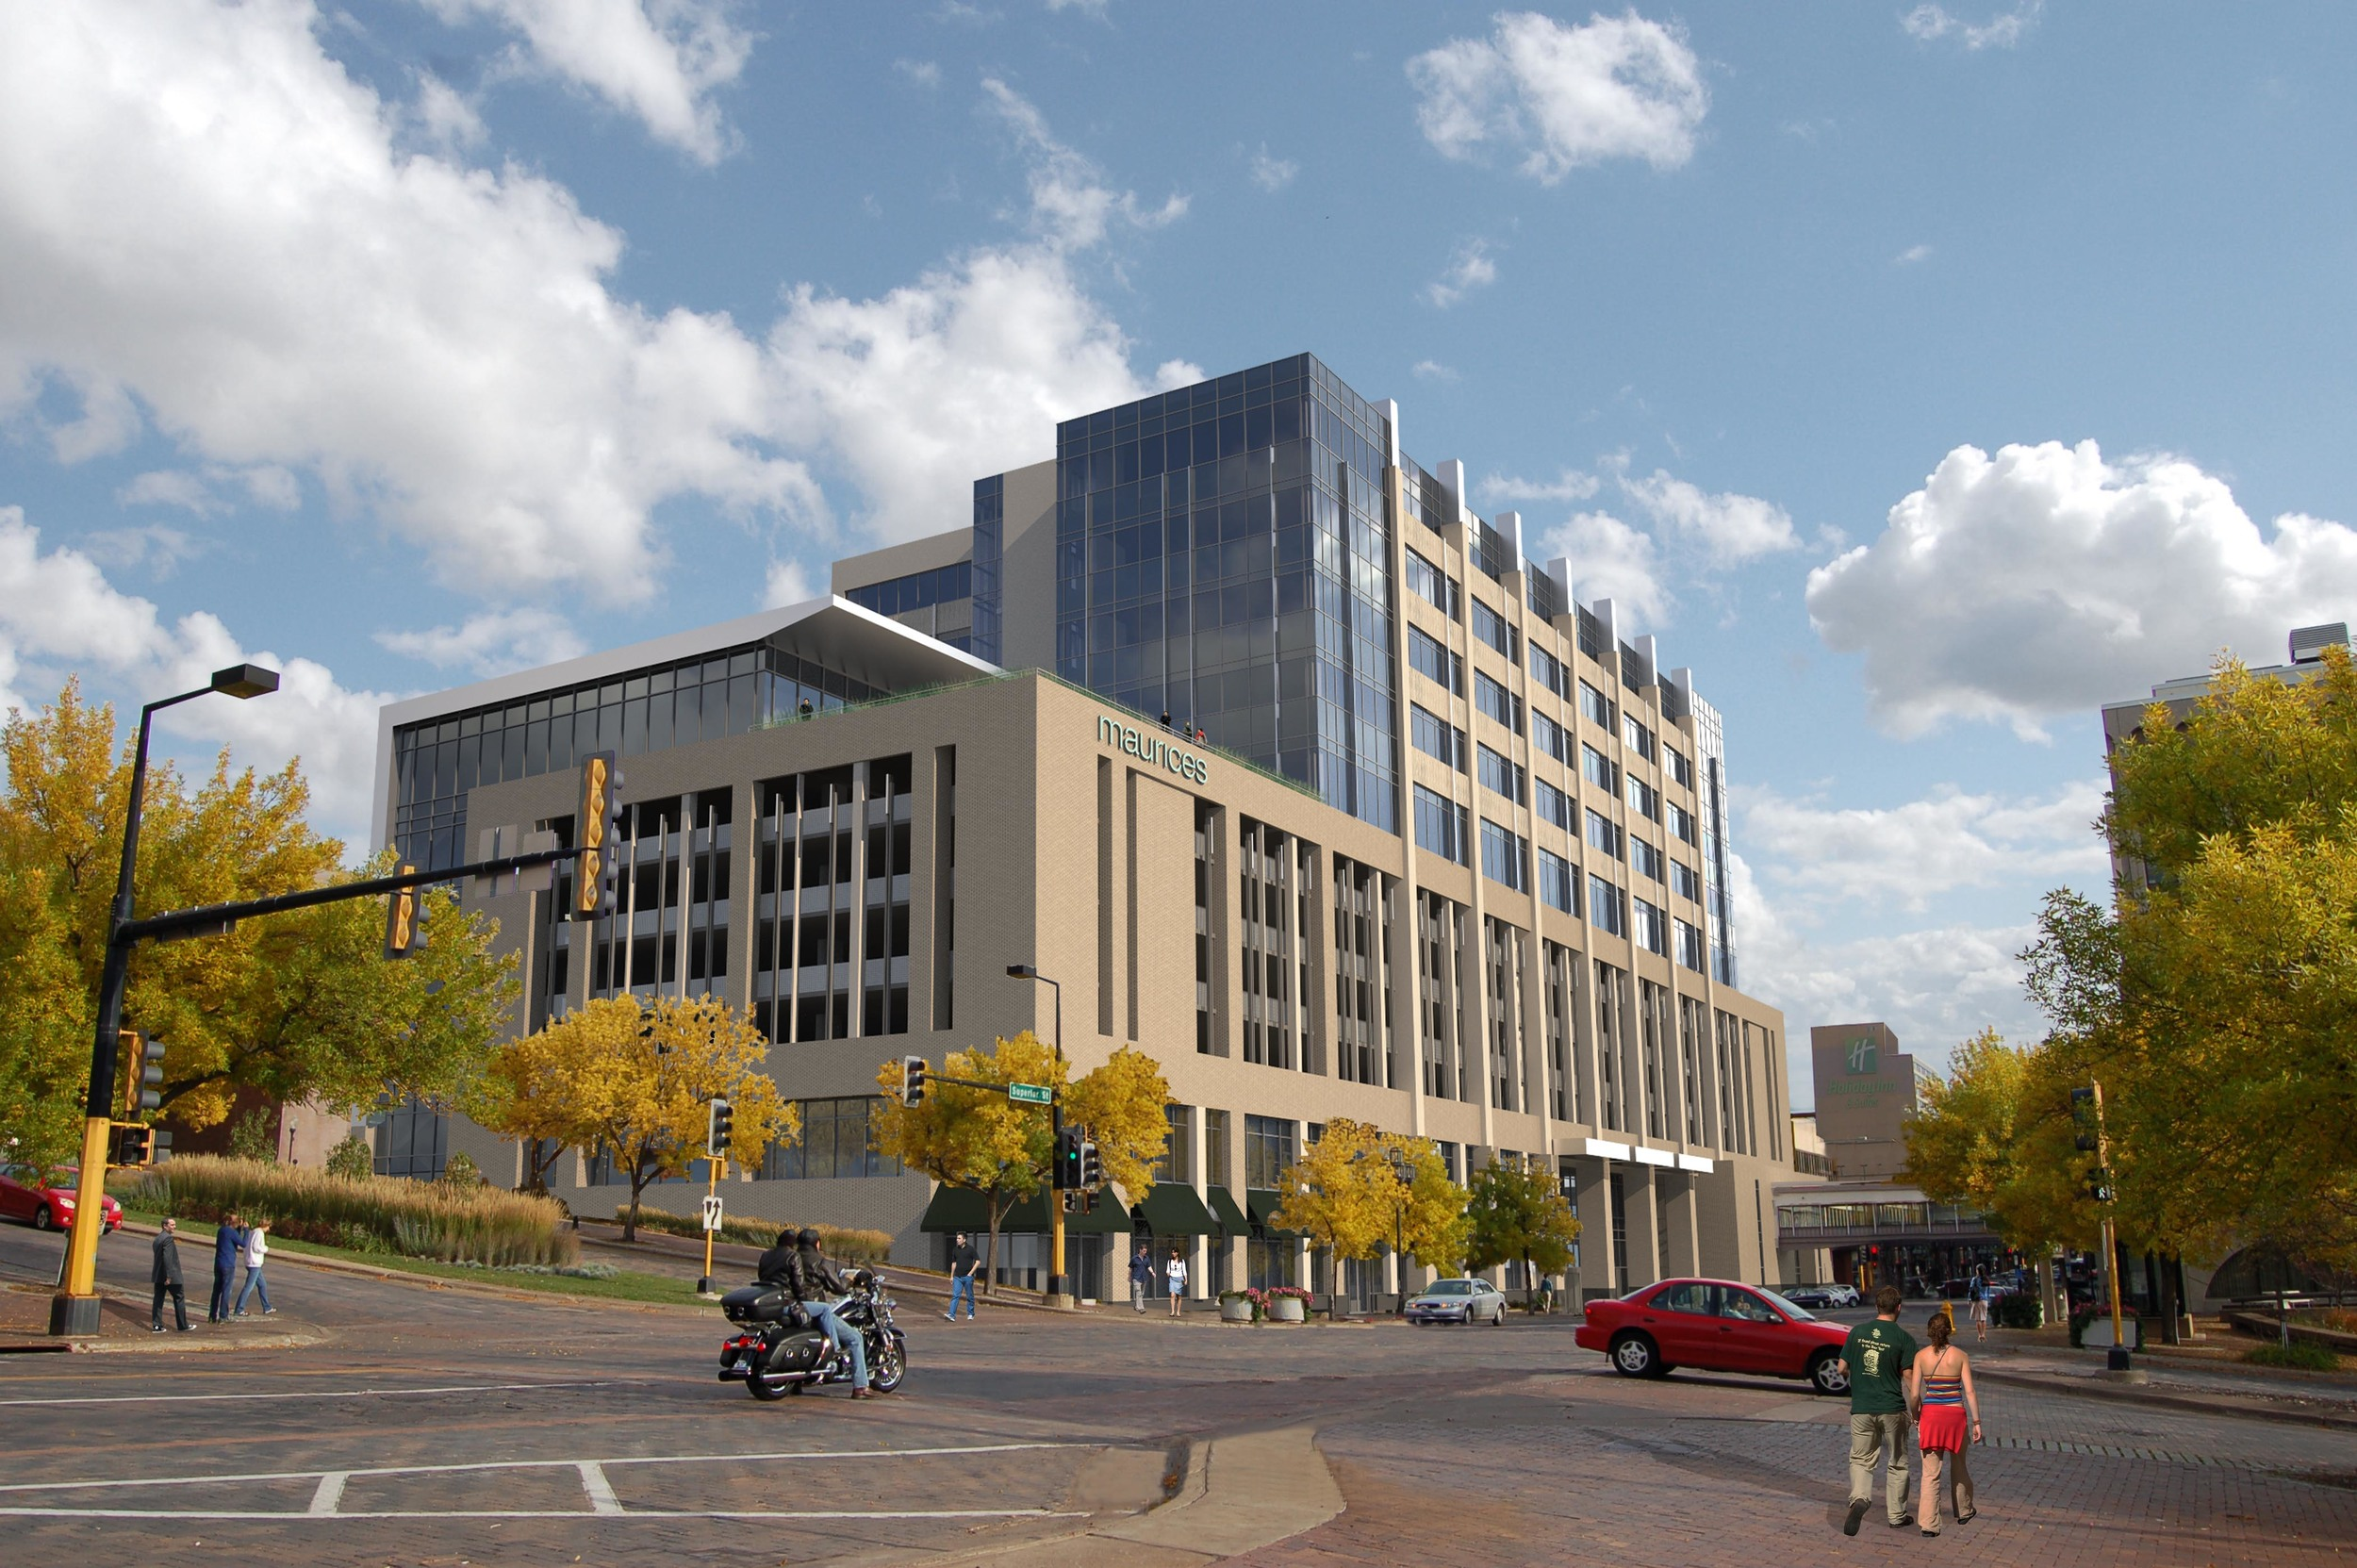 maurices-Headquarters-Superior-Street-View2.jpg